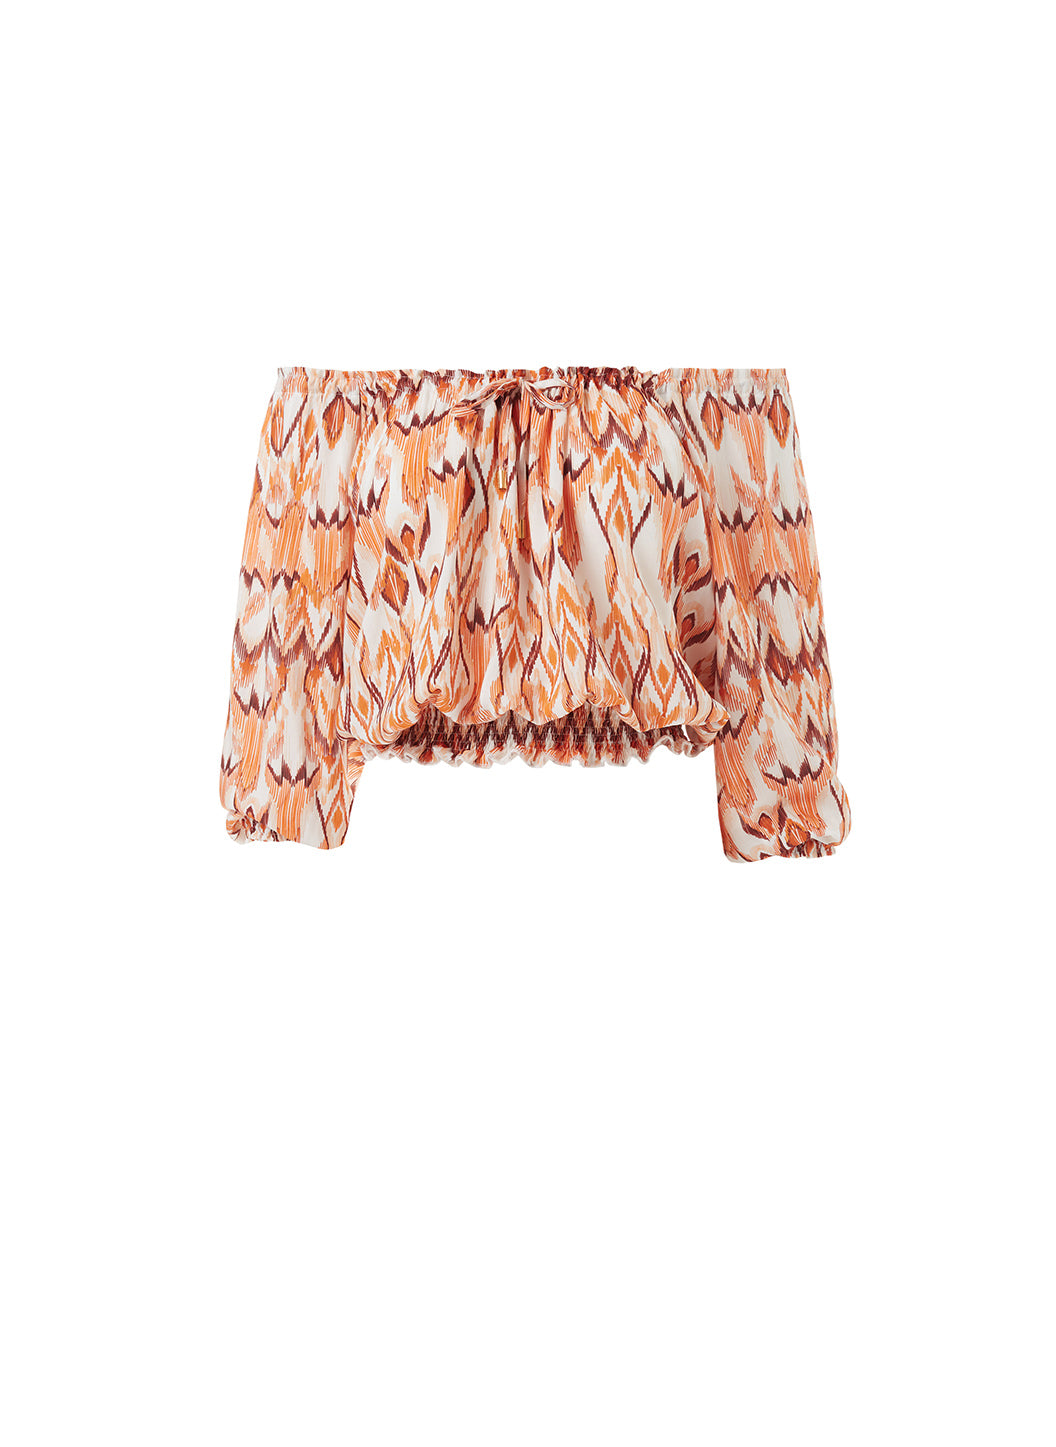 Anne Ikat Off The Shoulder Top - Melissa Odabash Beachwear